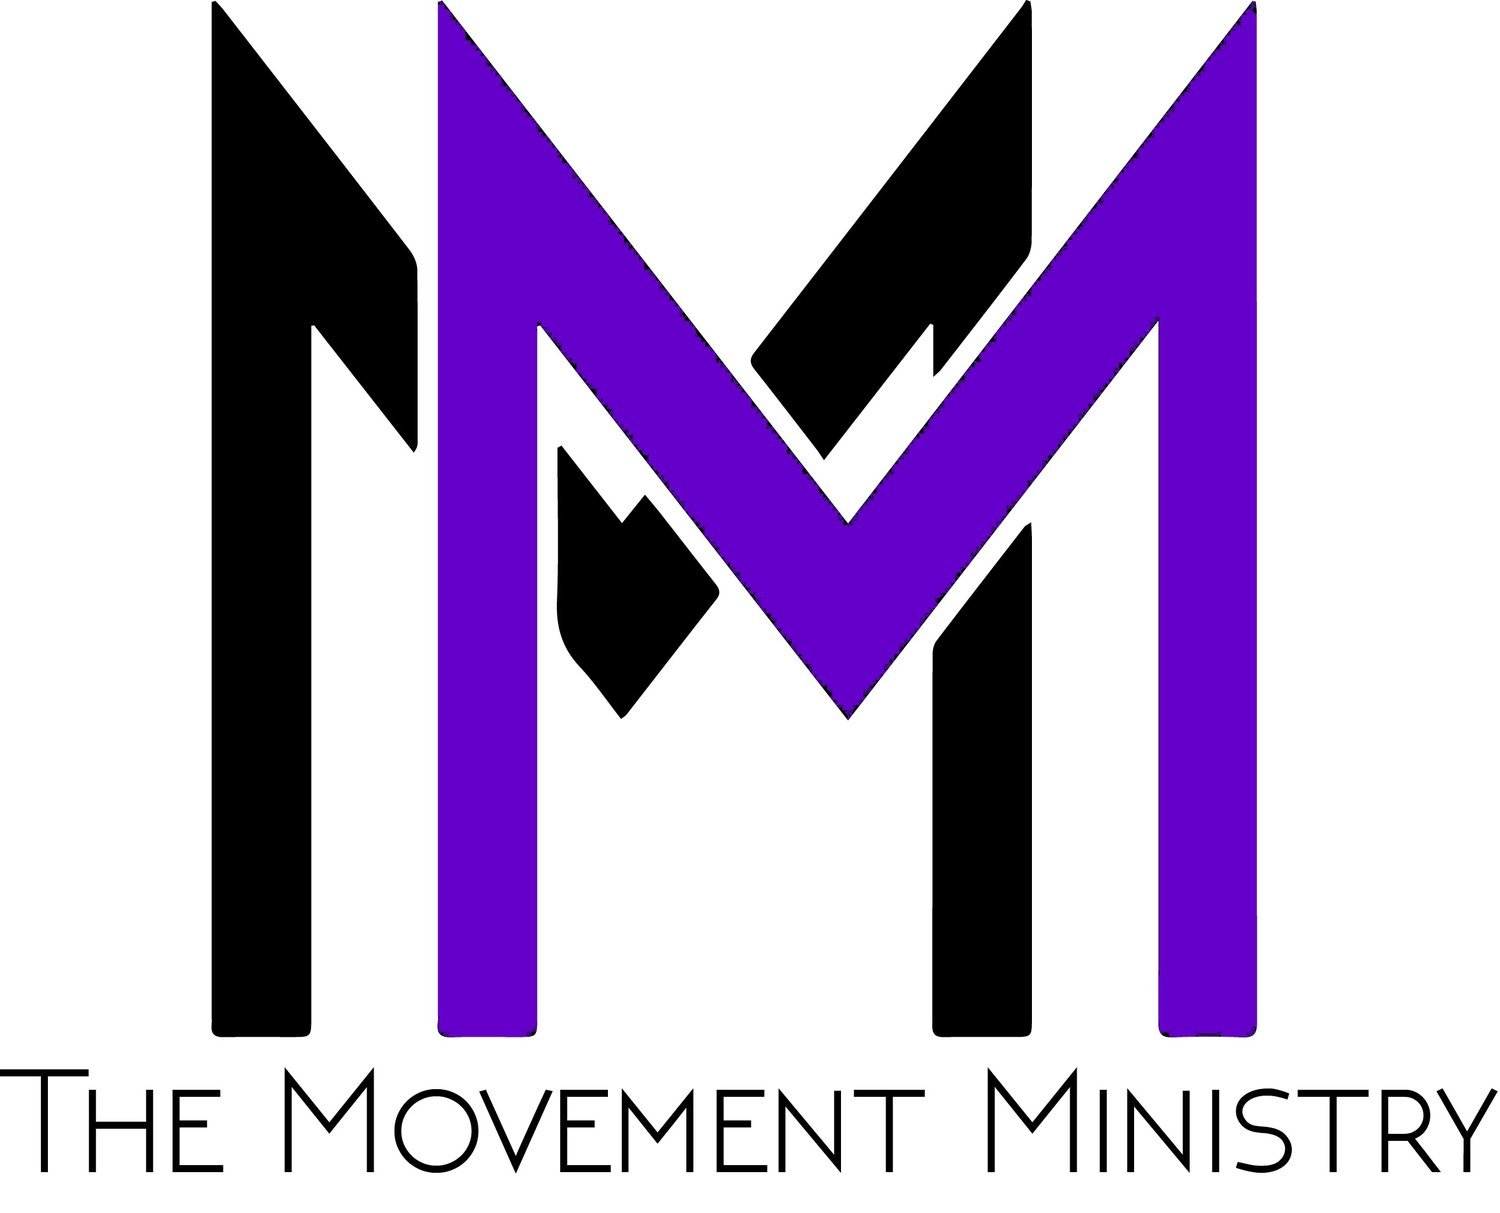 The Movement Ministry